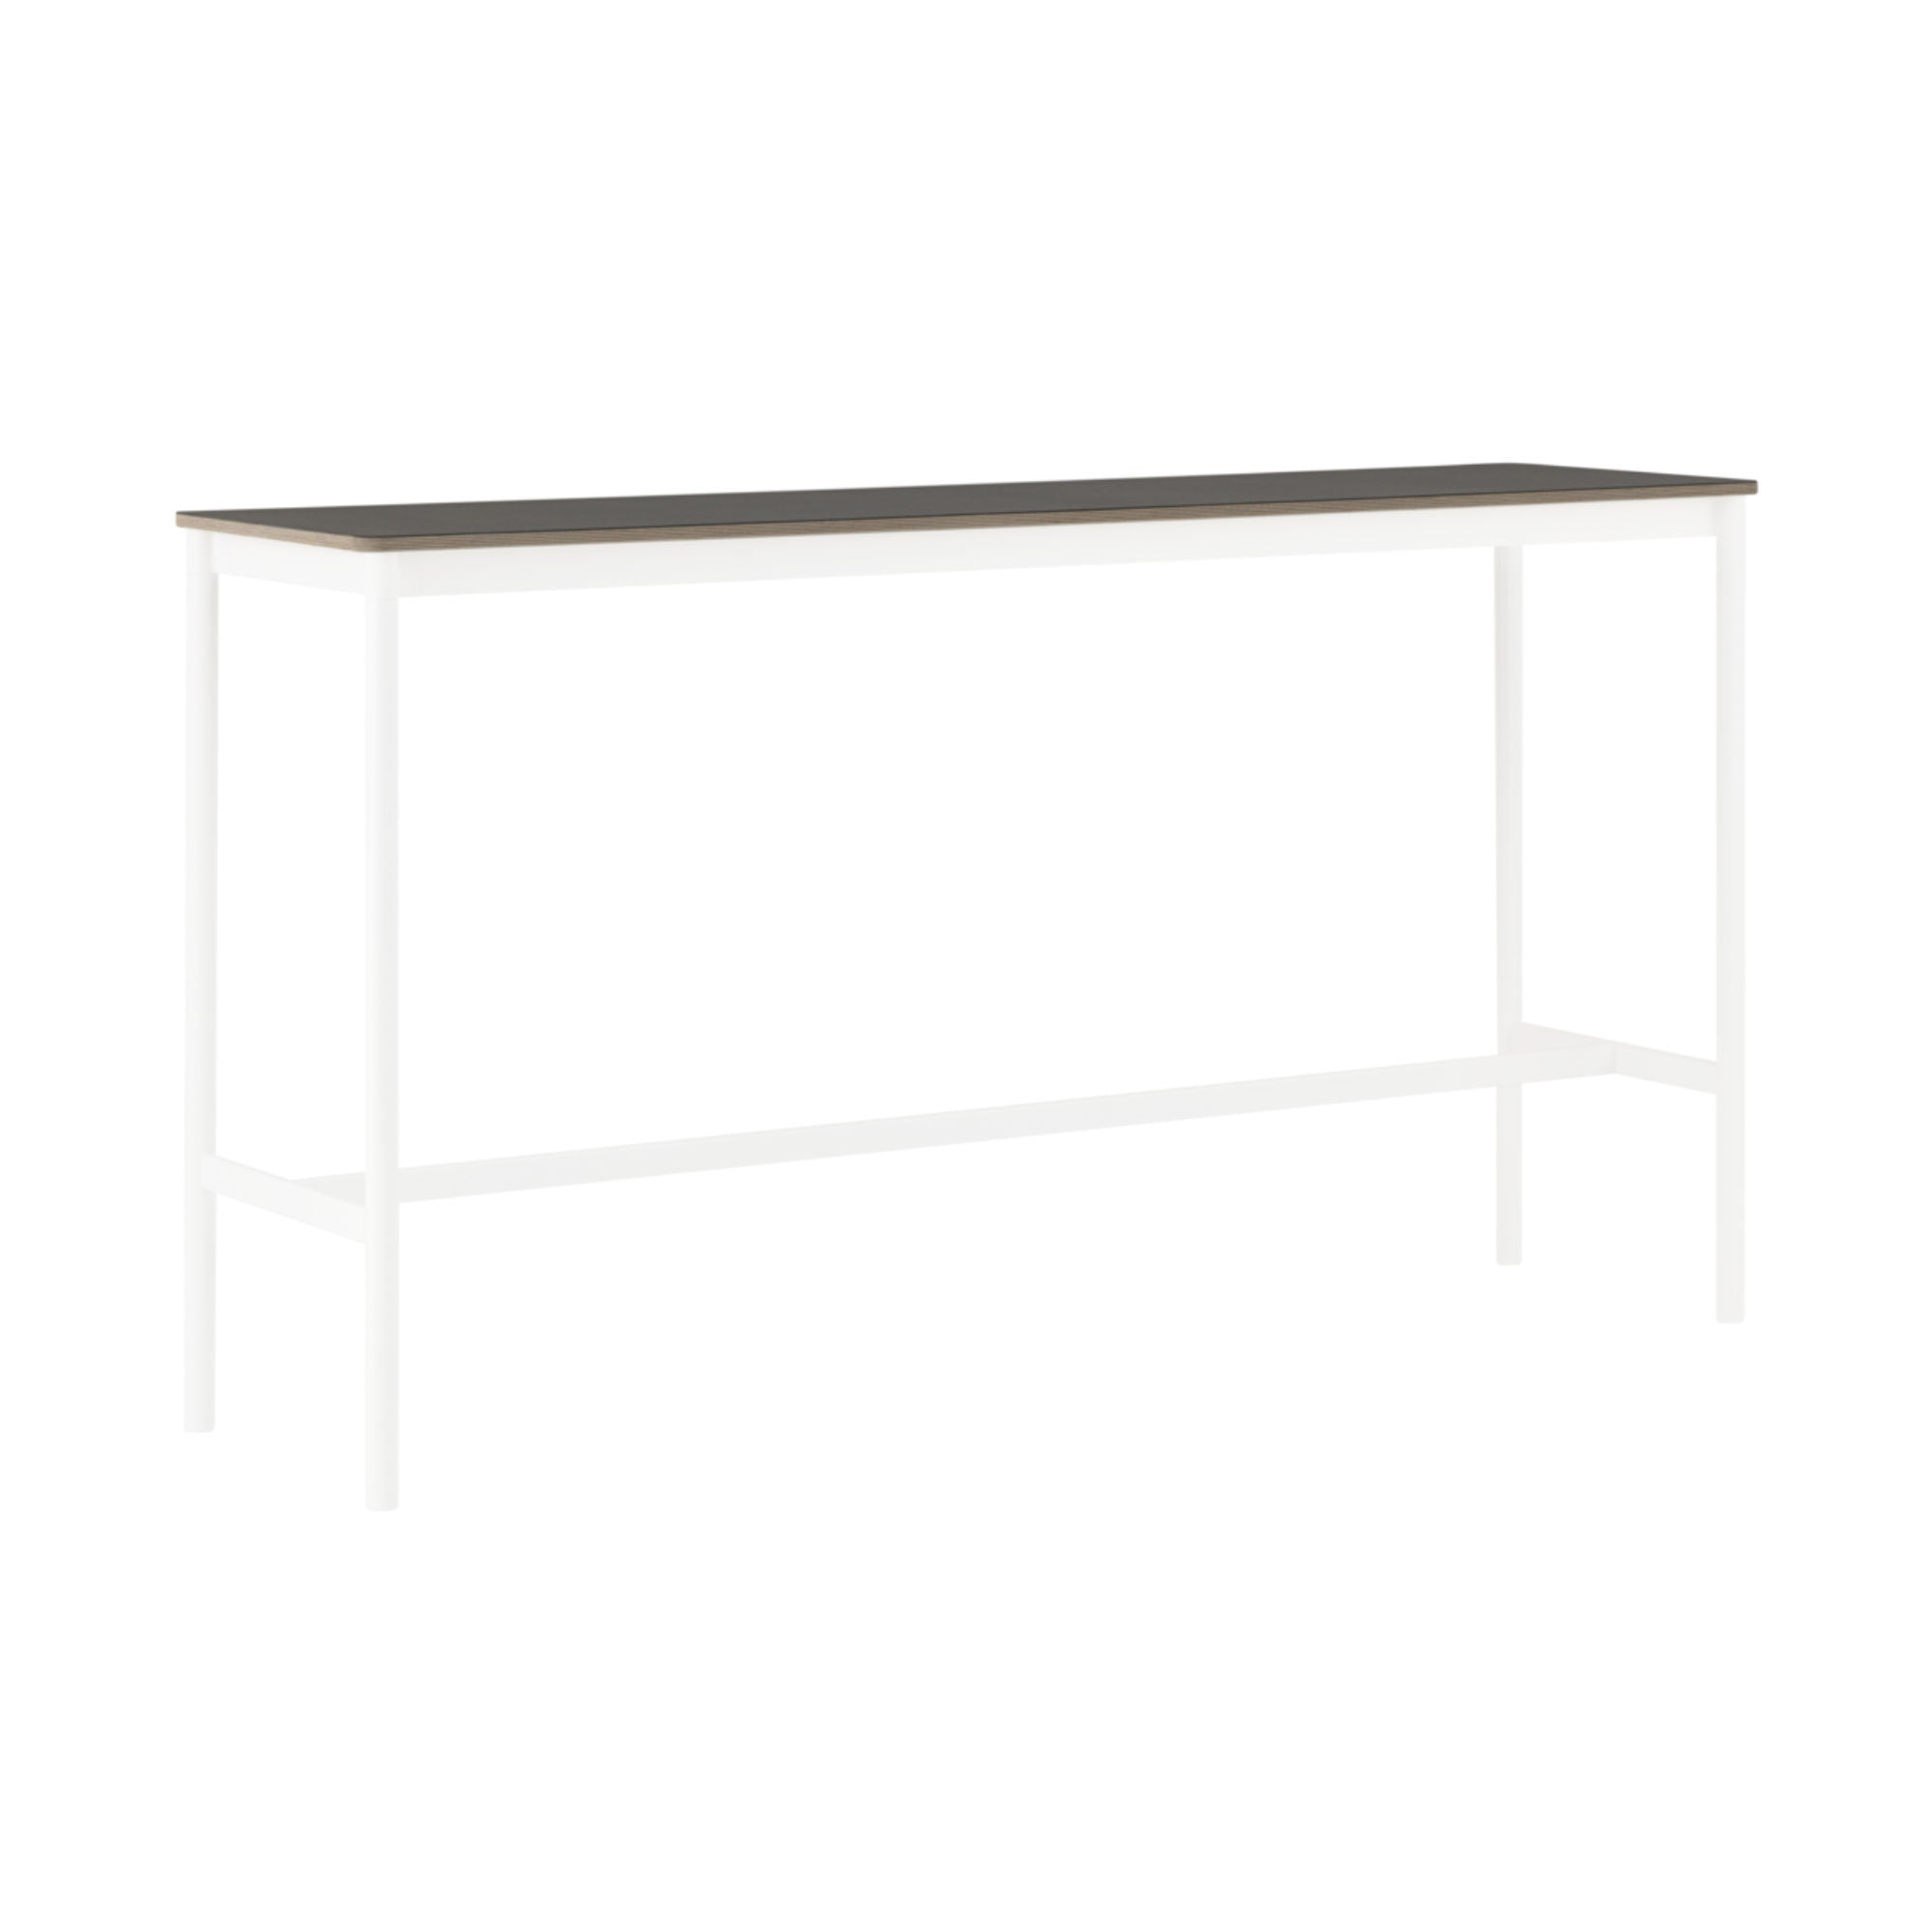 Muuto Base High Table 190x50 h:105cm , Black Linoleum/Plywood/White